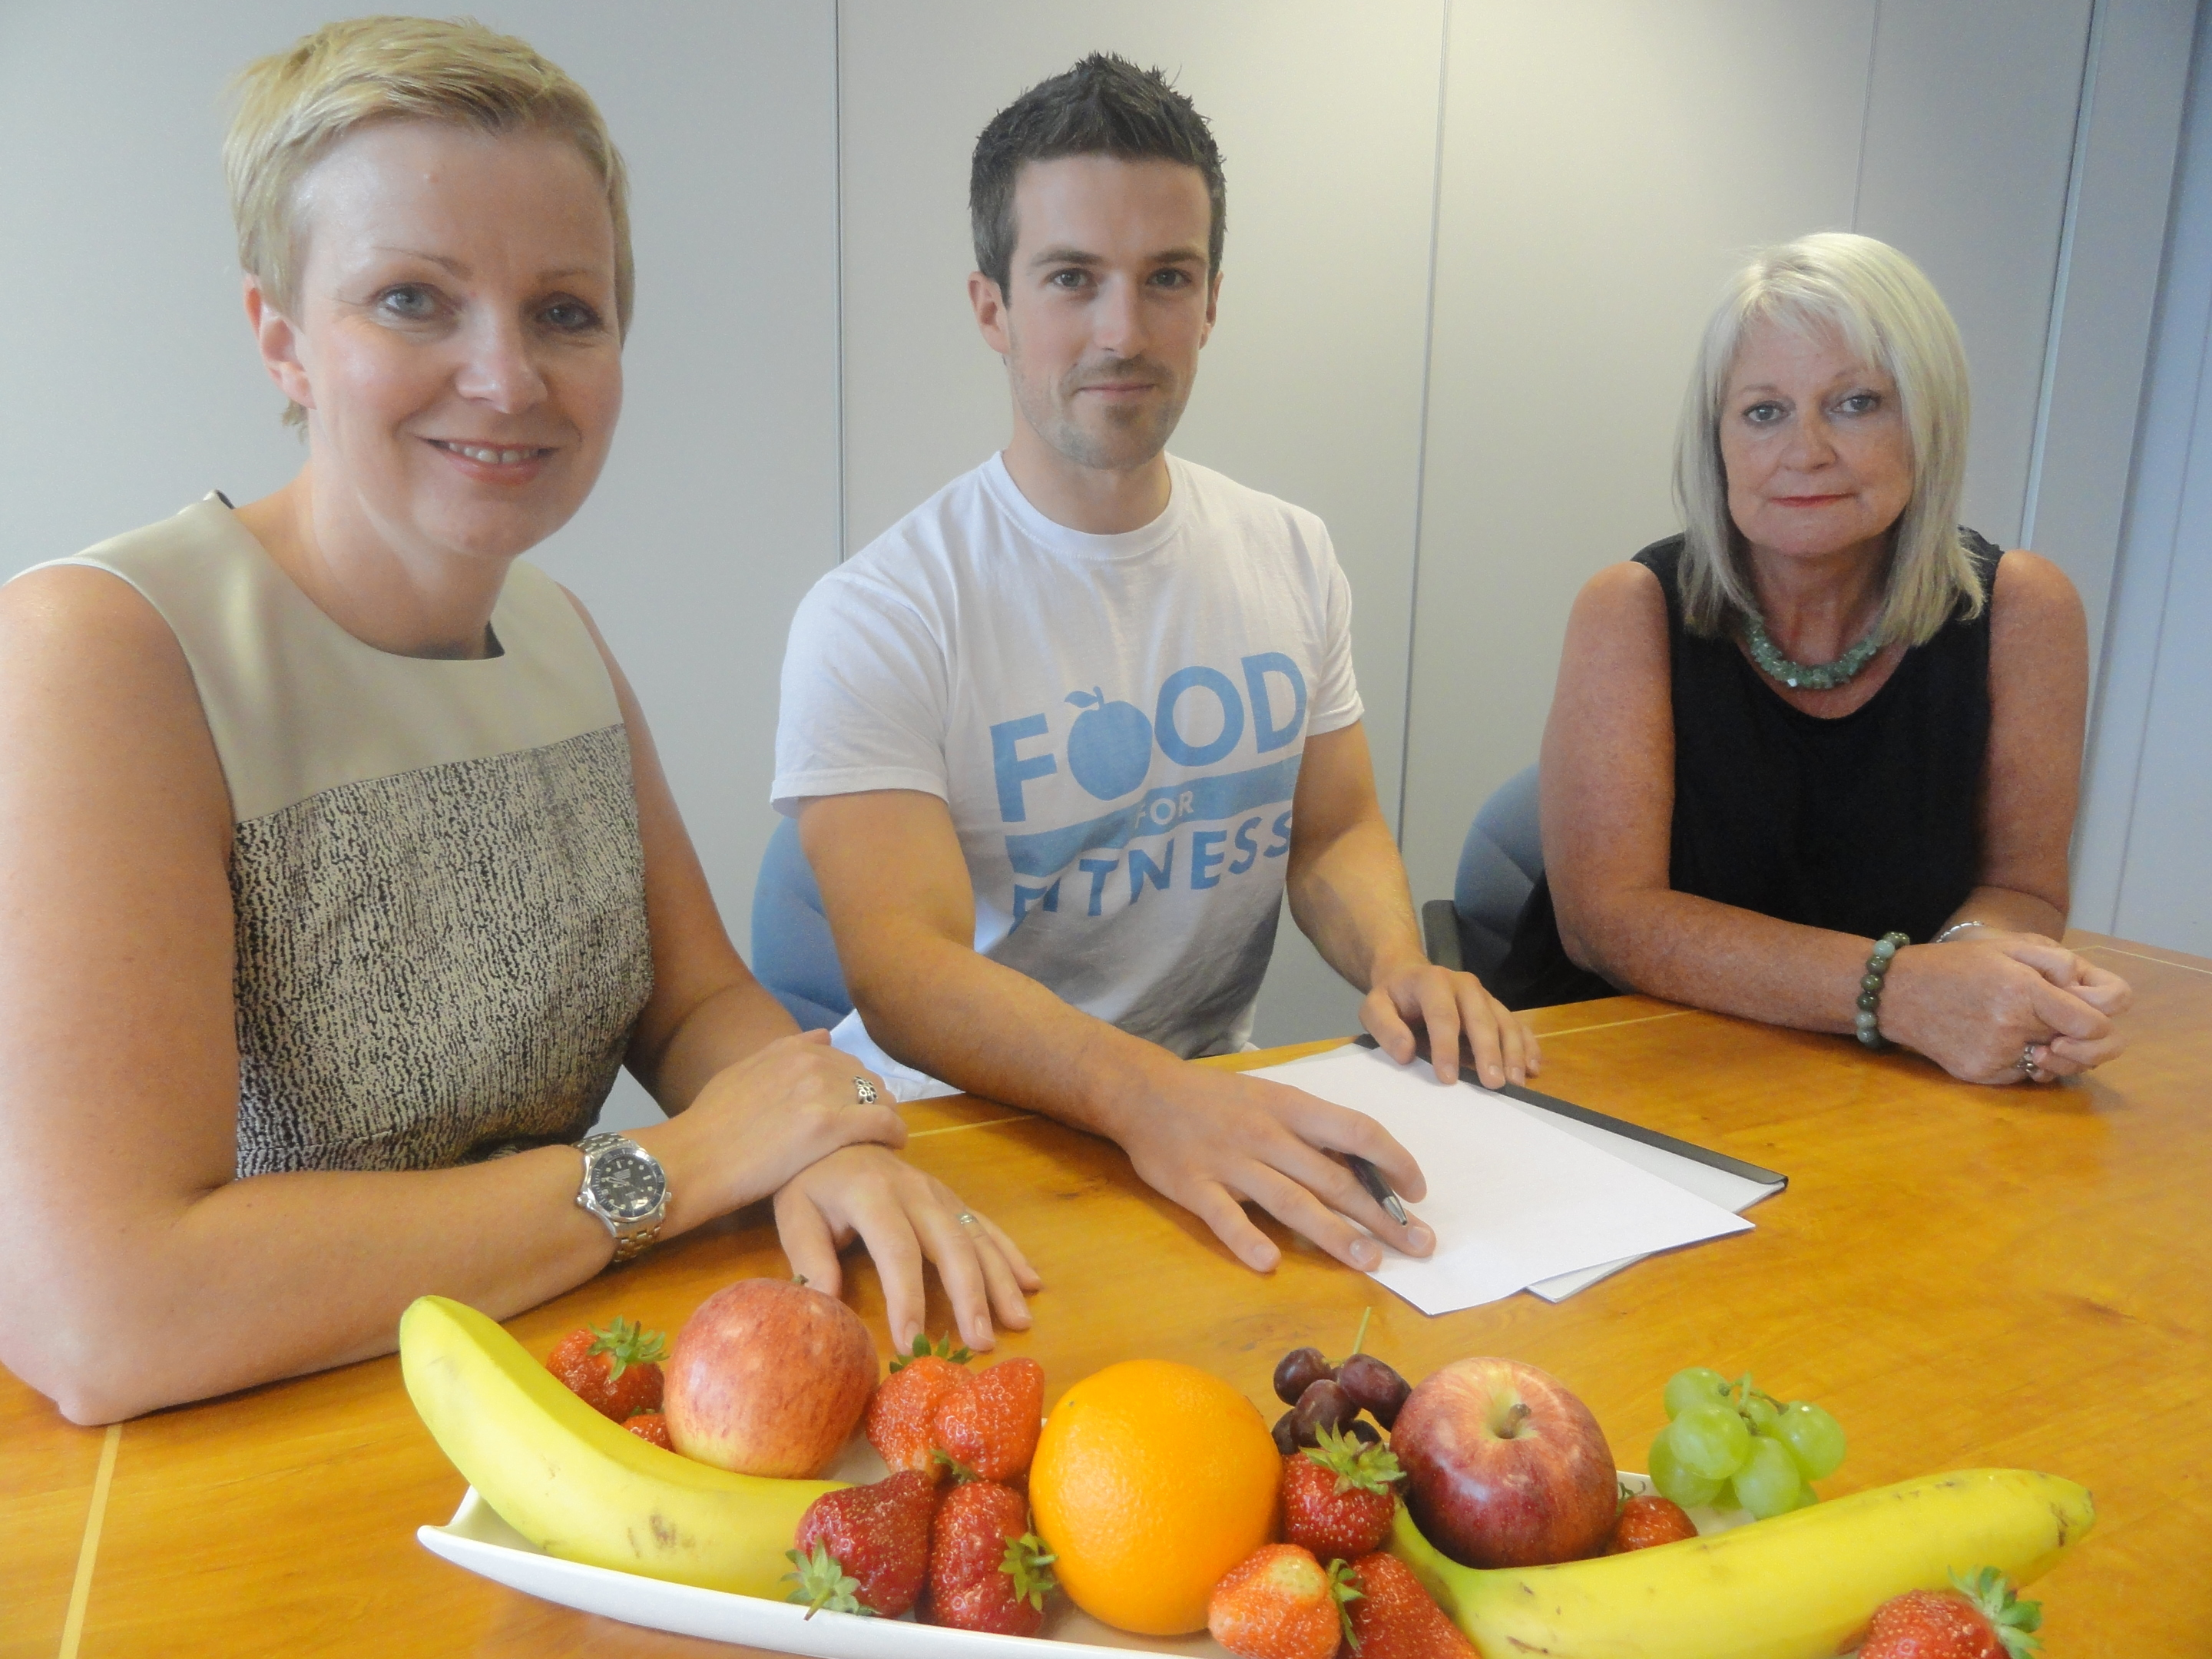 Jennifer Young, chairman of Ledingham Chalmers, Scott Baptie, director of Food for Fitness and Wendy Anderson, HR manager at Ledingham Chalmers